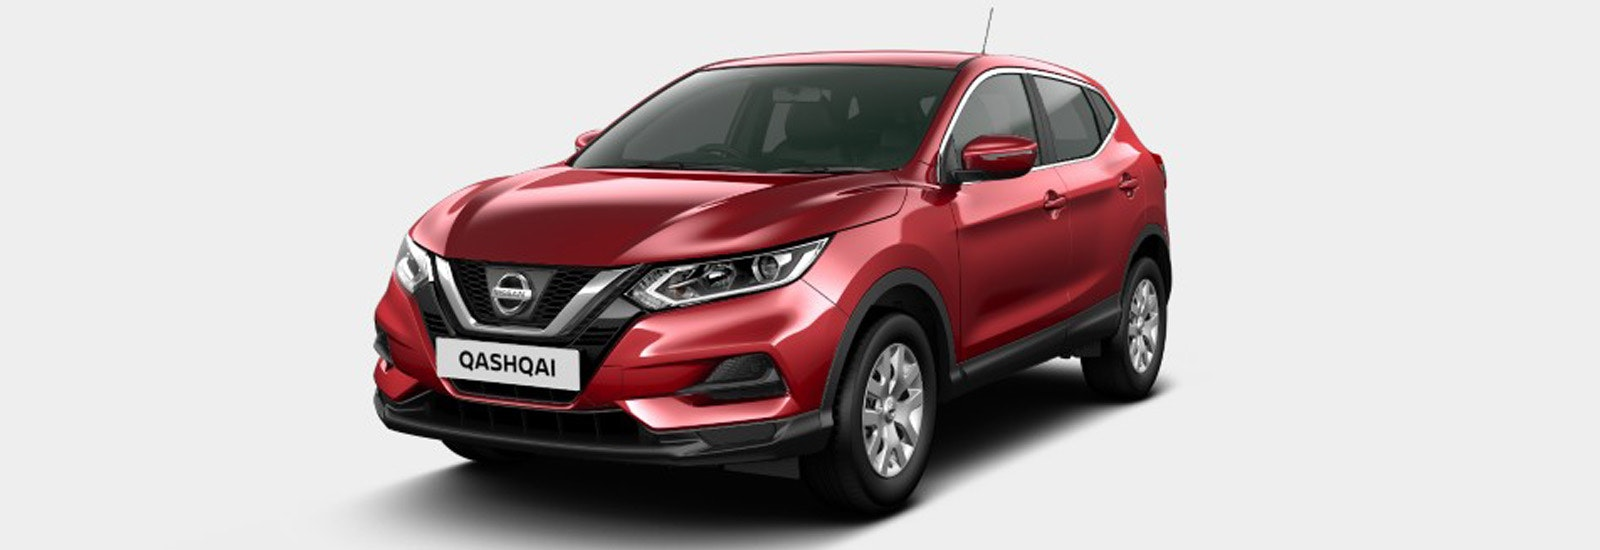 nissan qashqai colours guide and prices carwow rh carwow co uk Nissan Qashqai Luggage Capacity Nissan Qashqai Trunk